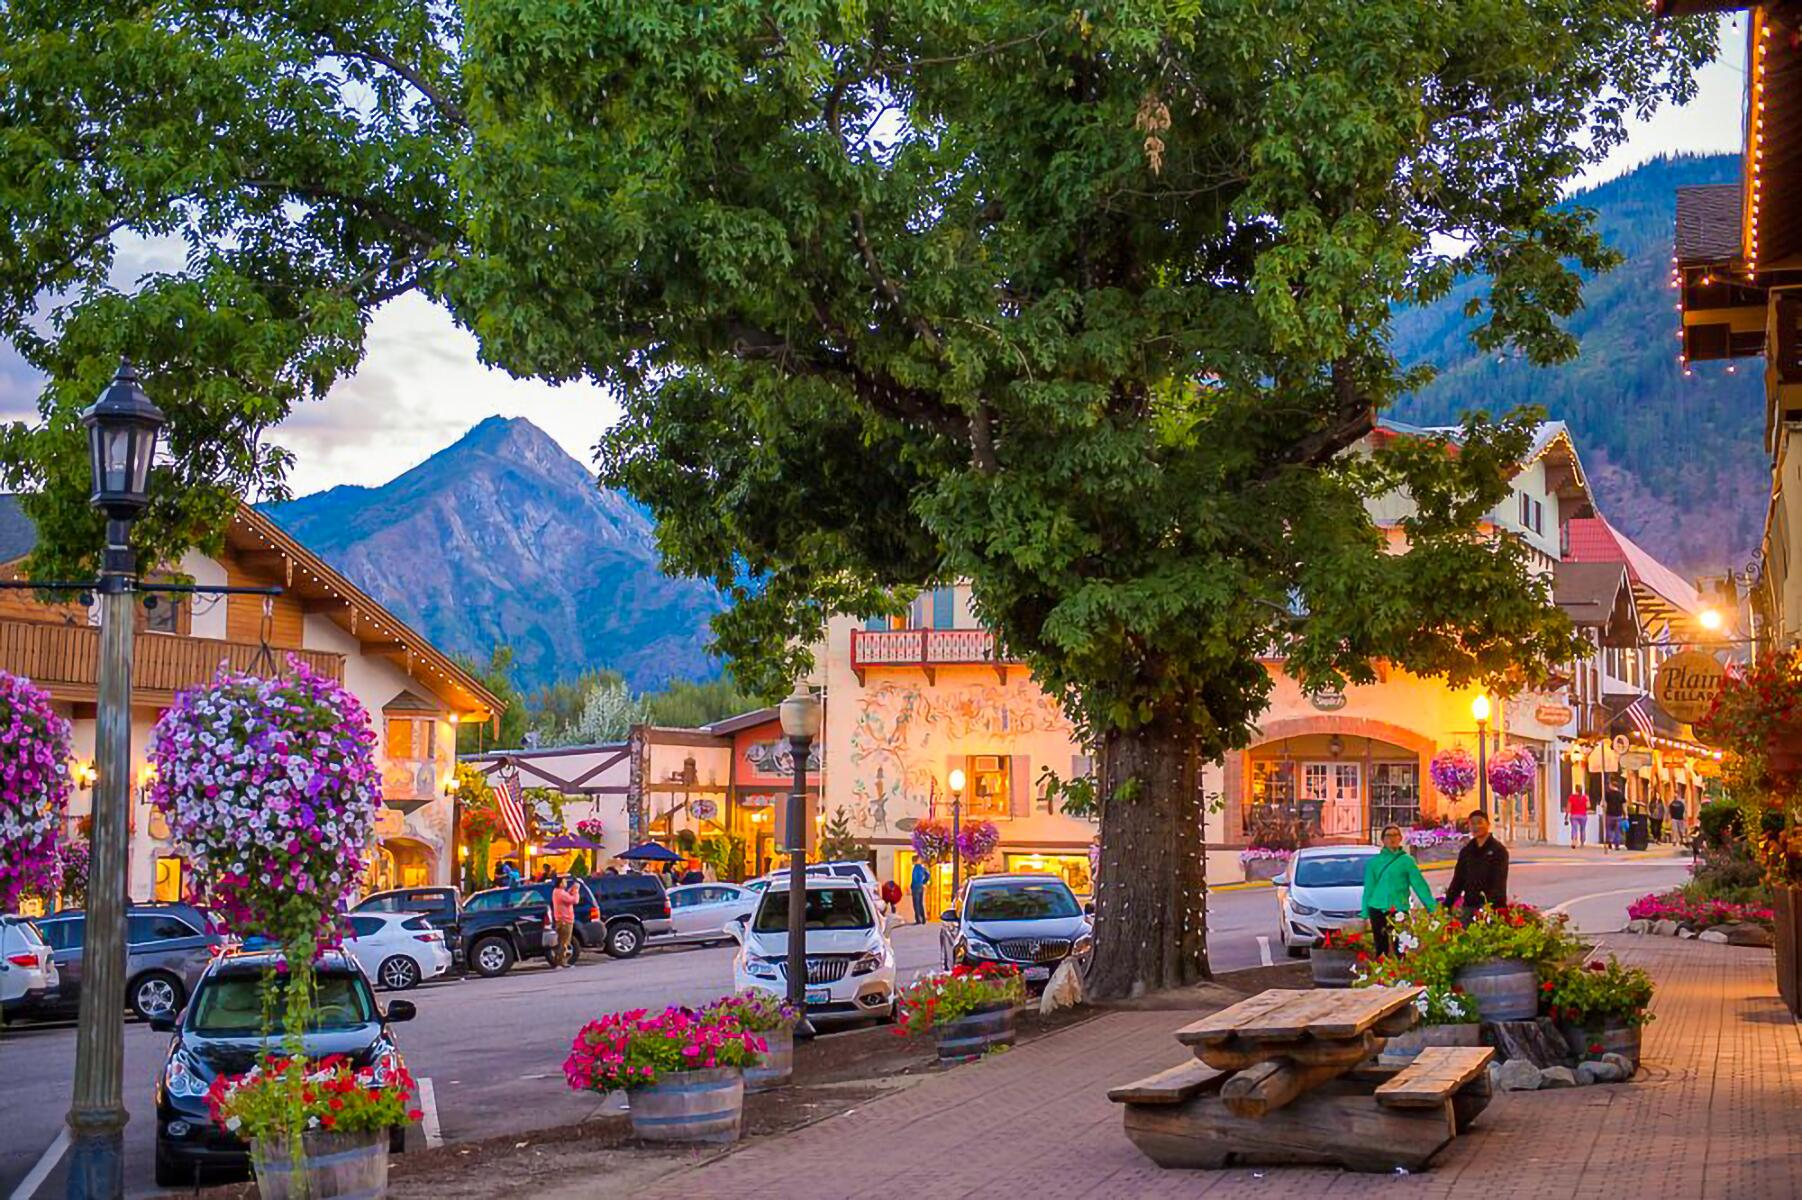 The Most Romantic Small Towns in America